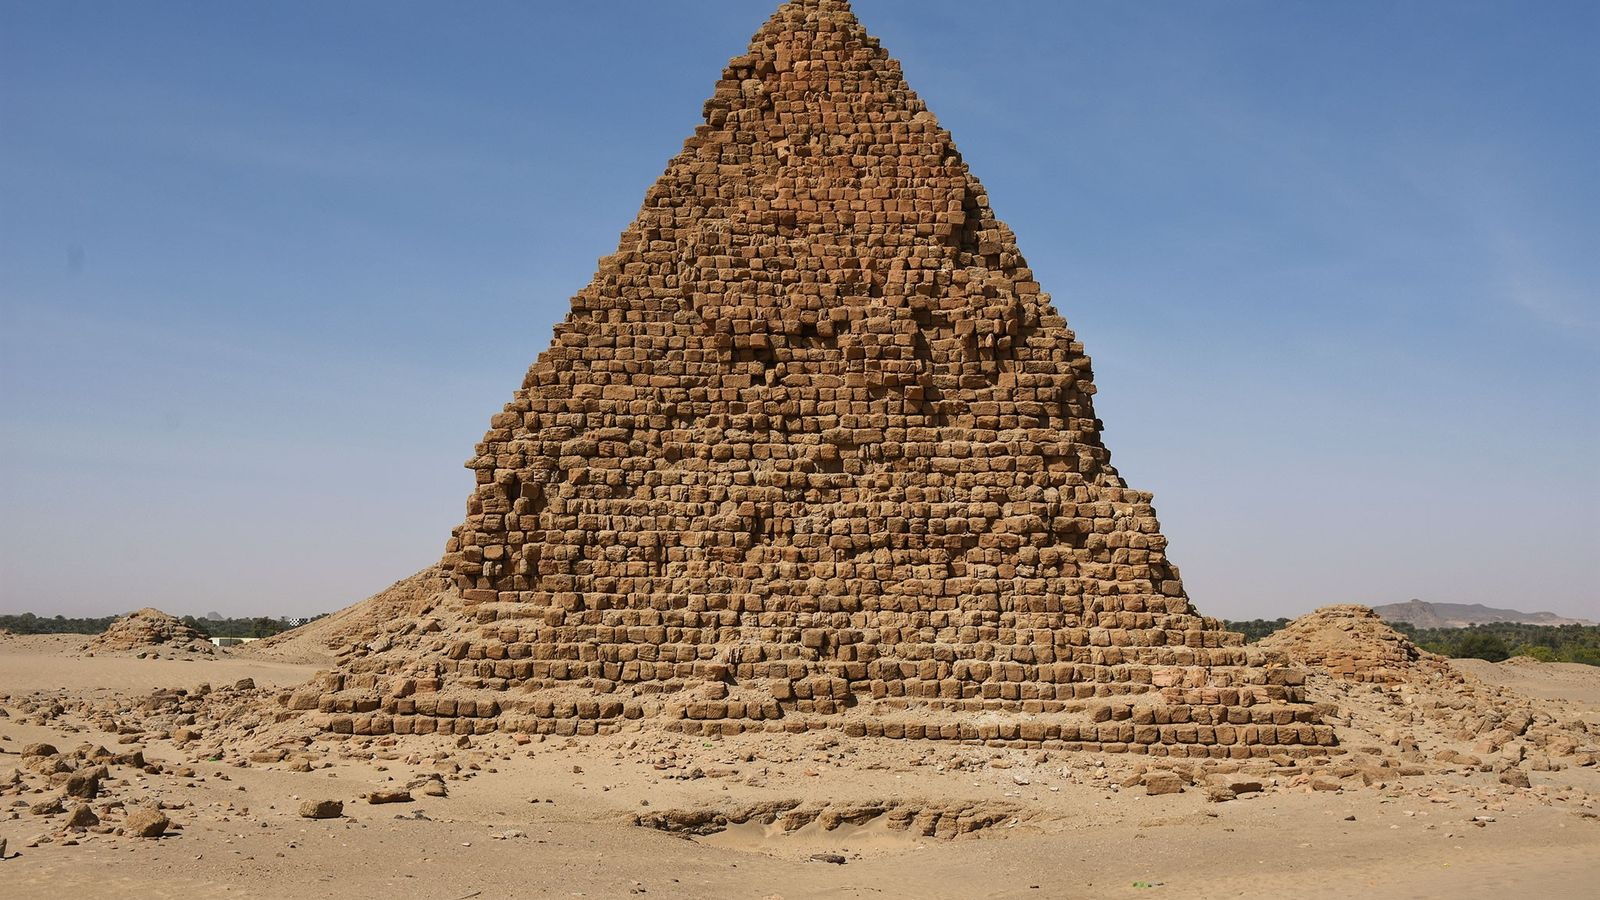 The pyramid of King Aspelta, successor (and brother) of Anlamani, who died around 580 B.C.